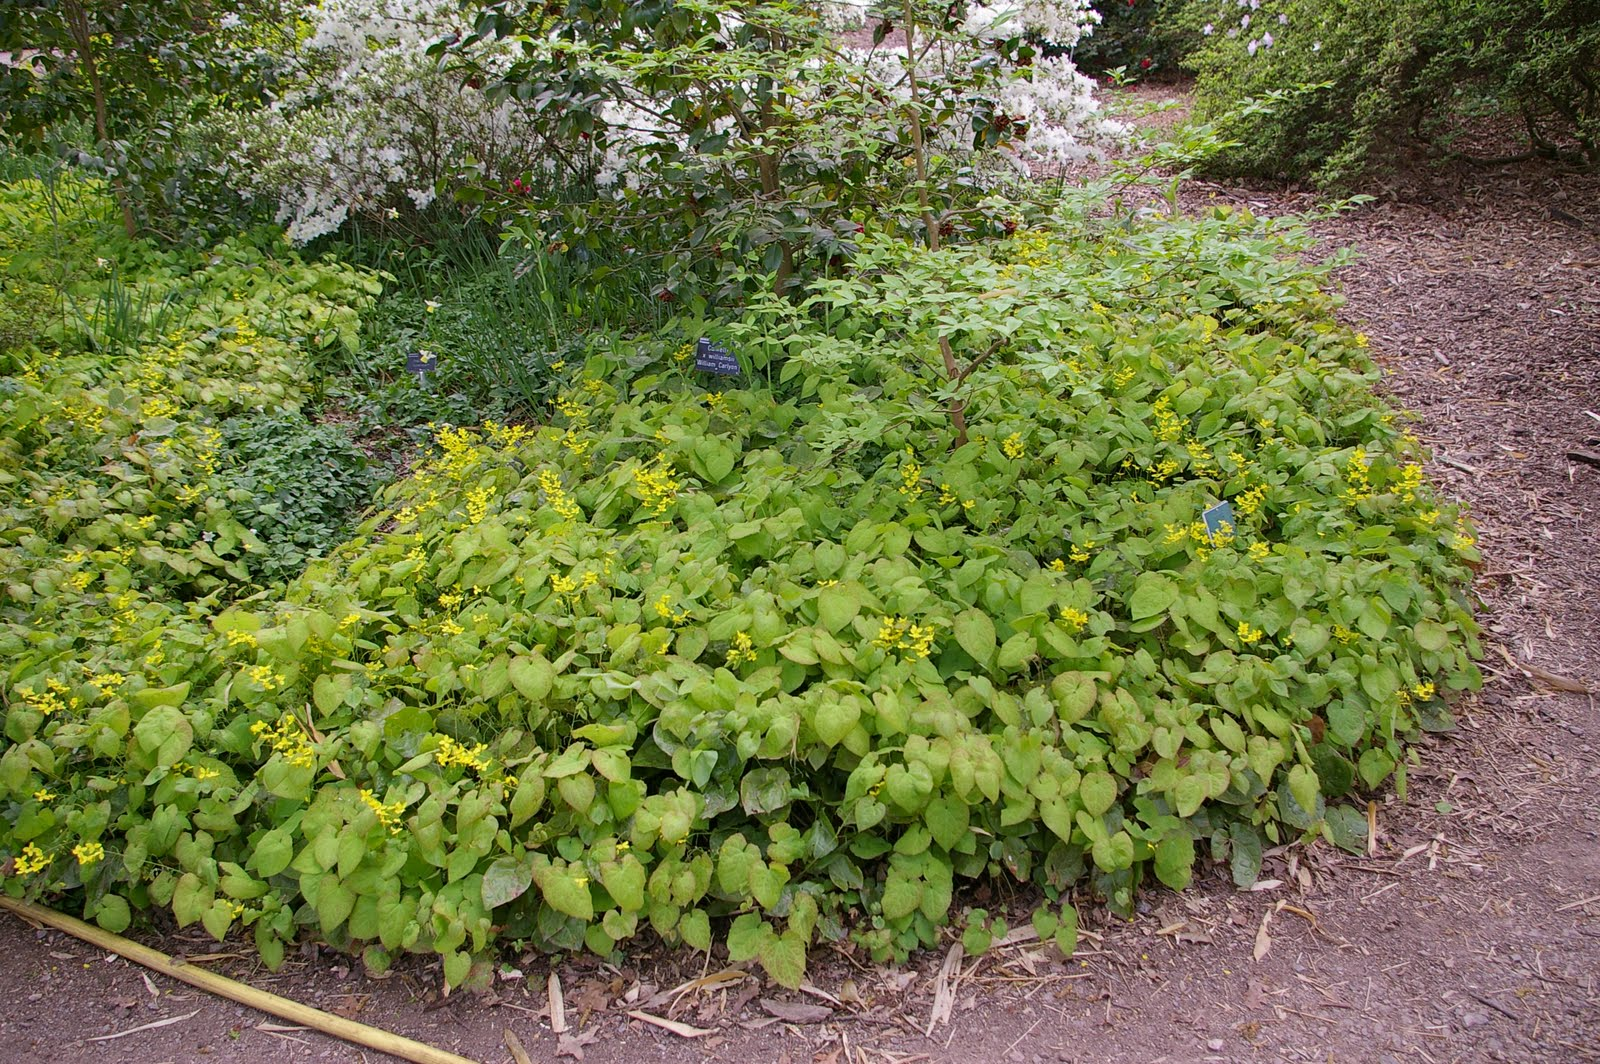 Seriously, groundcovers for shaded areas